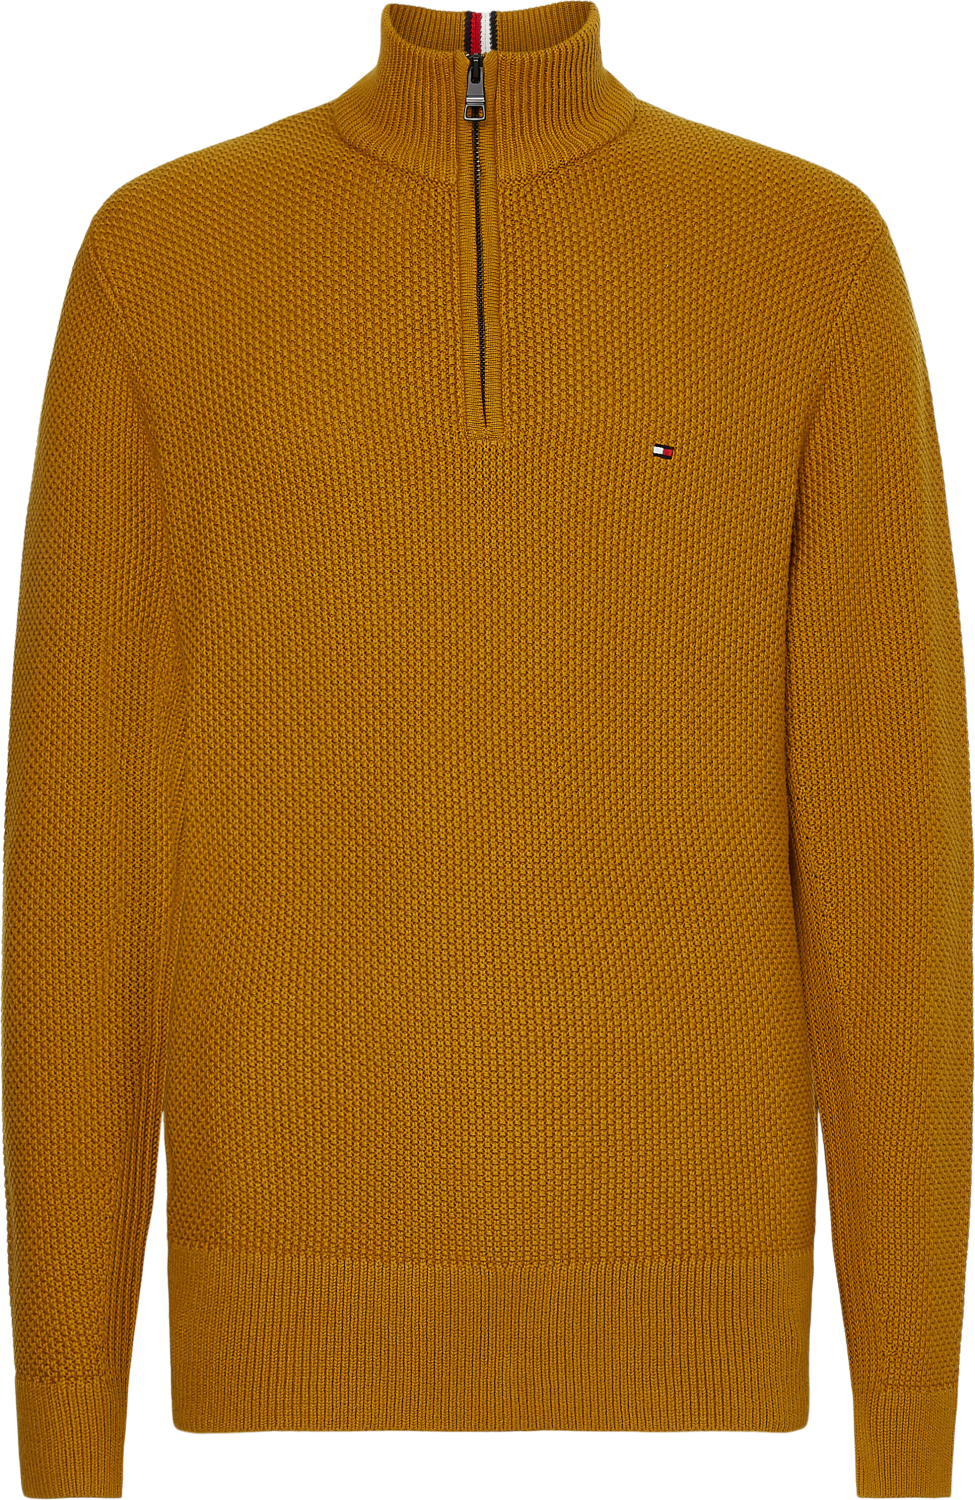 Tommy Hilfiger EXAGGERATED STRUCTUR, KD0 Crest Gold